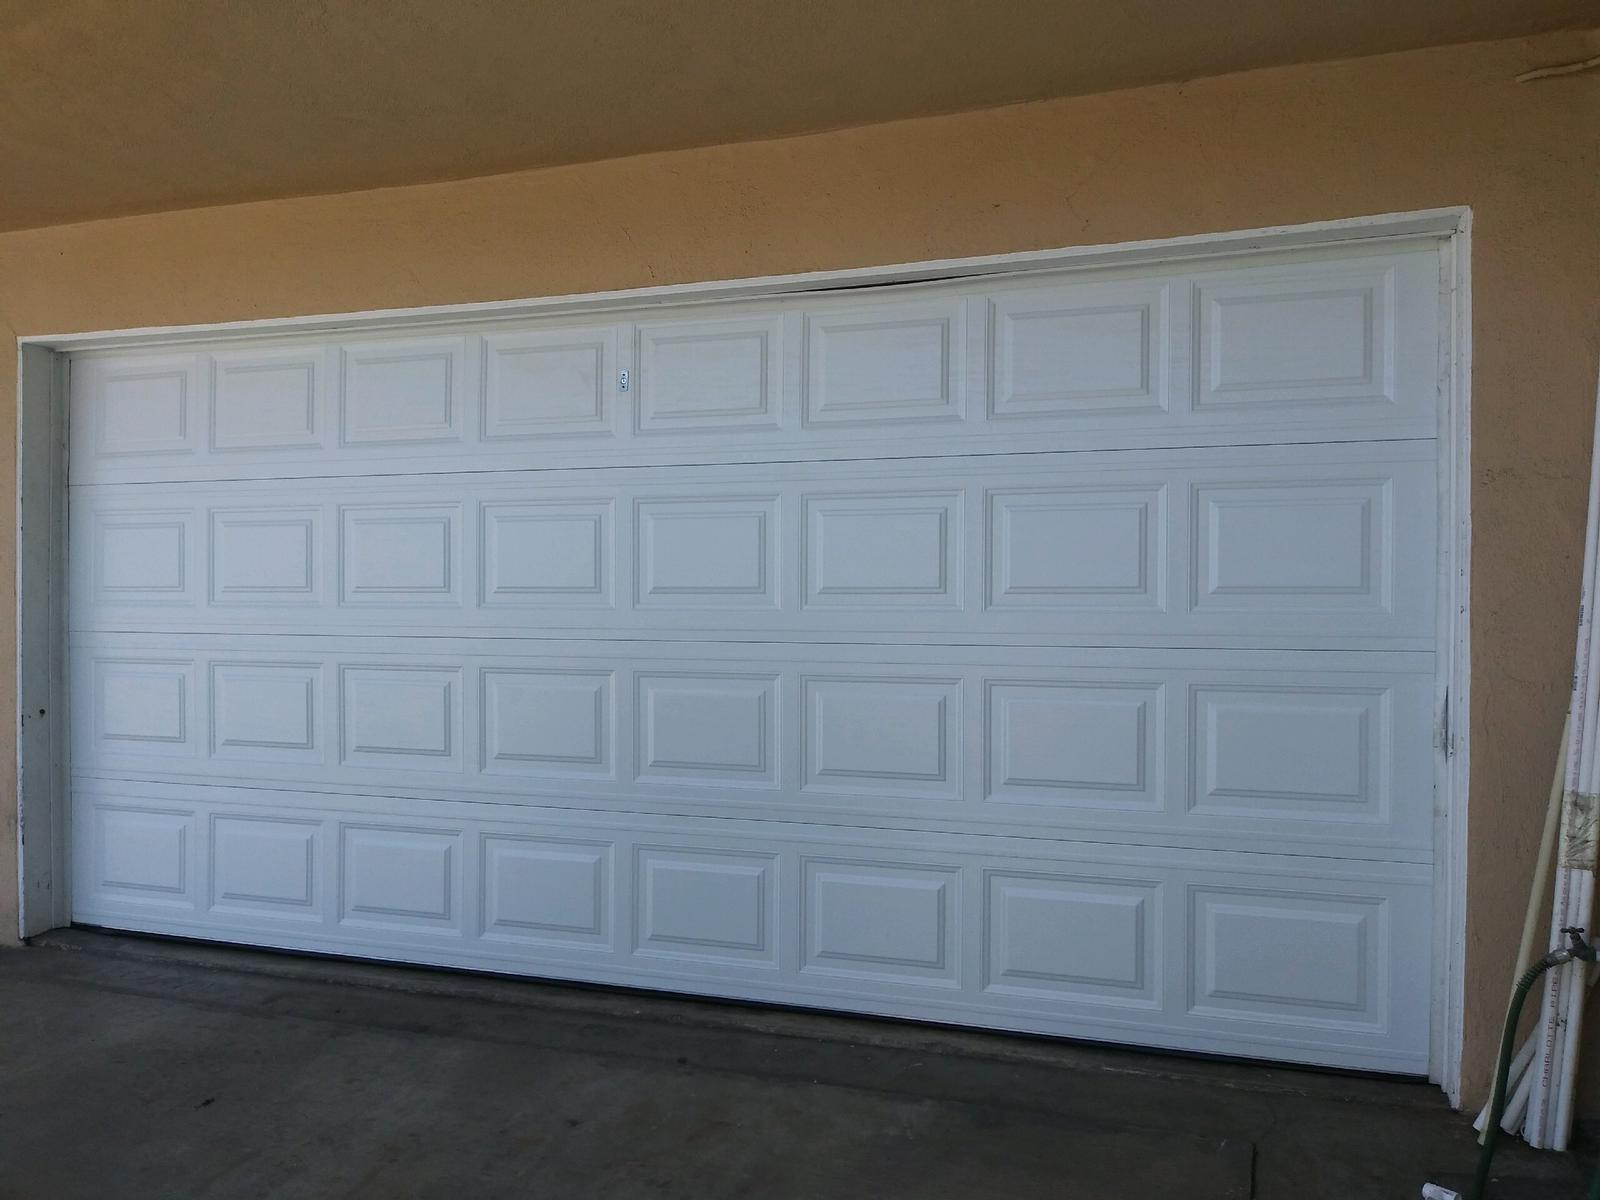 Garage Door Repair Carson, Compton